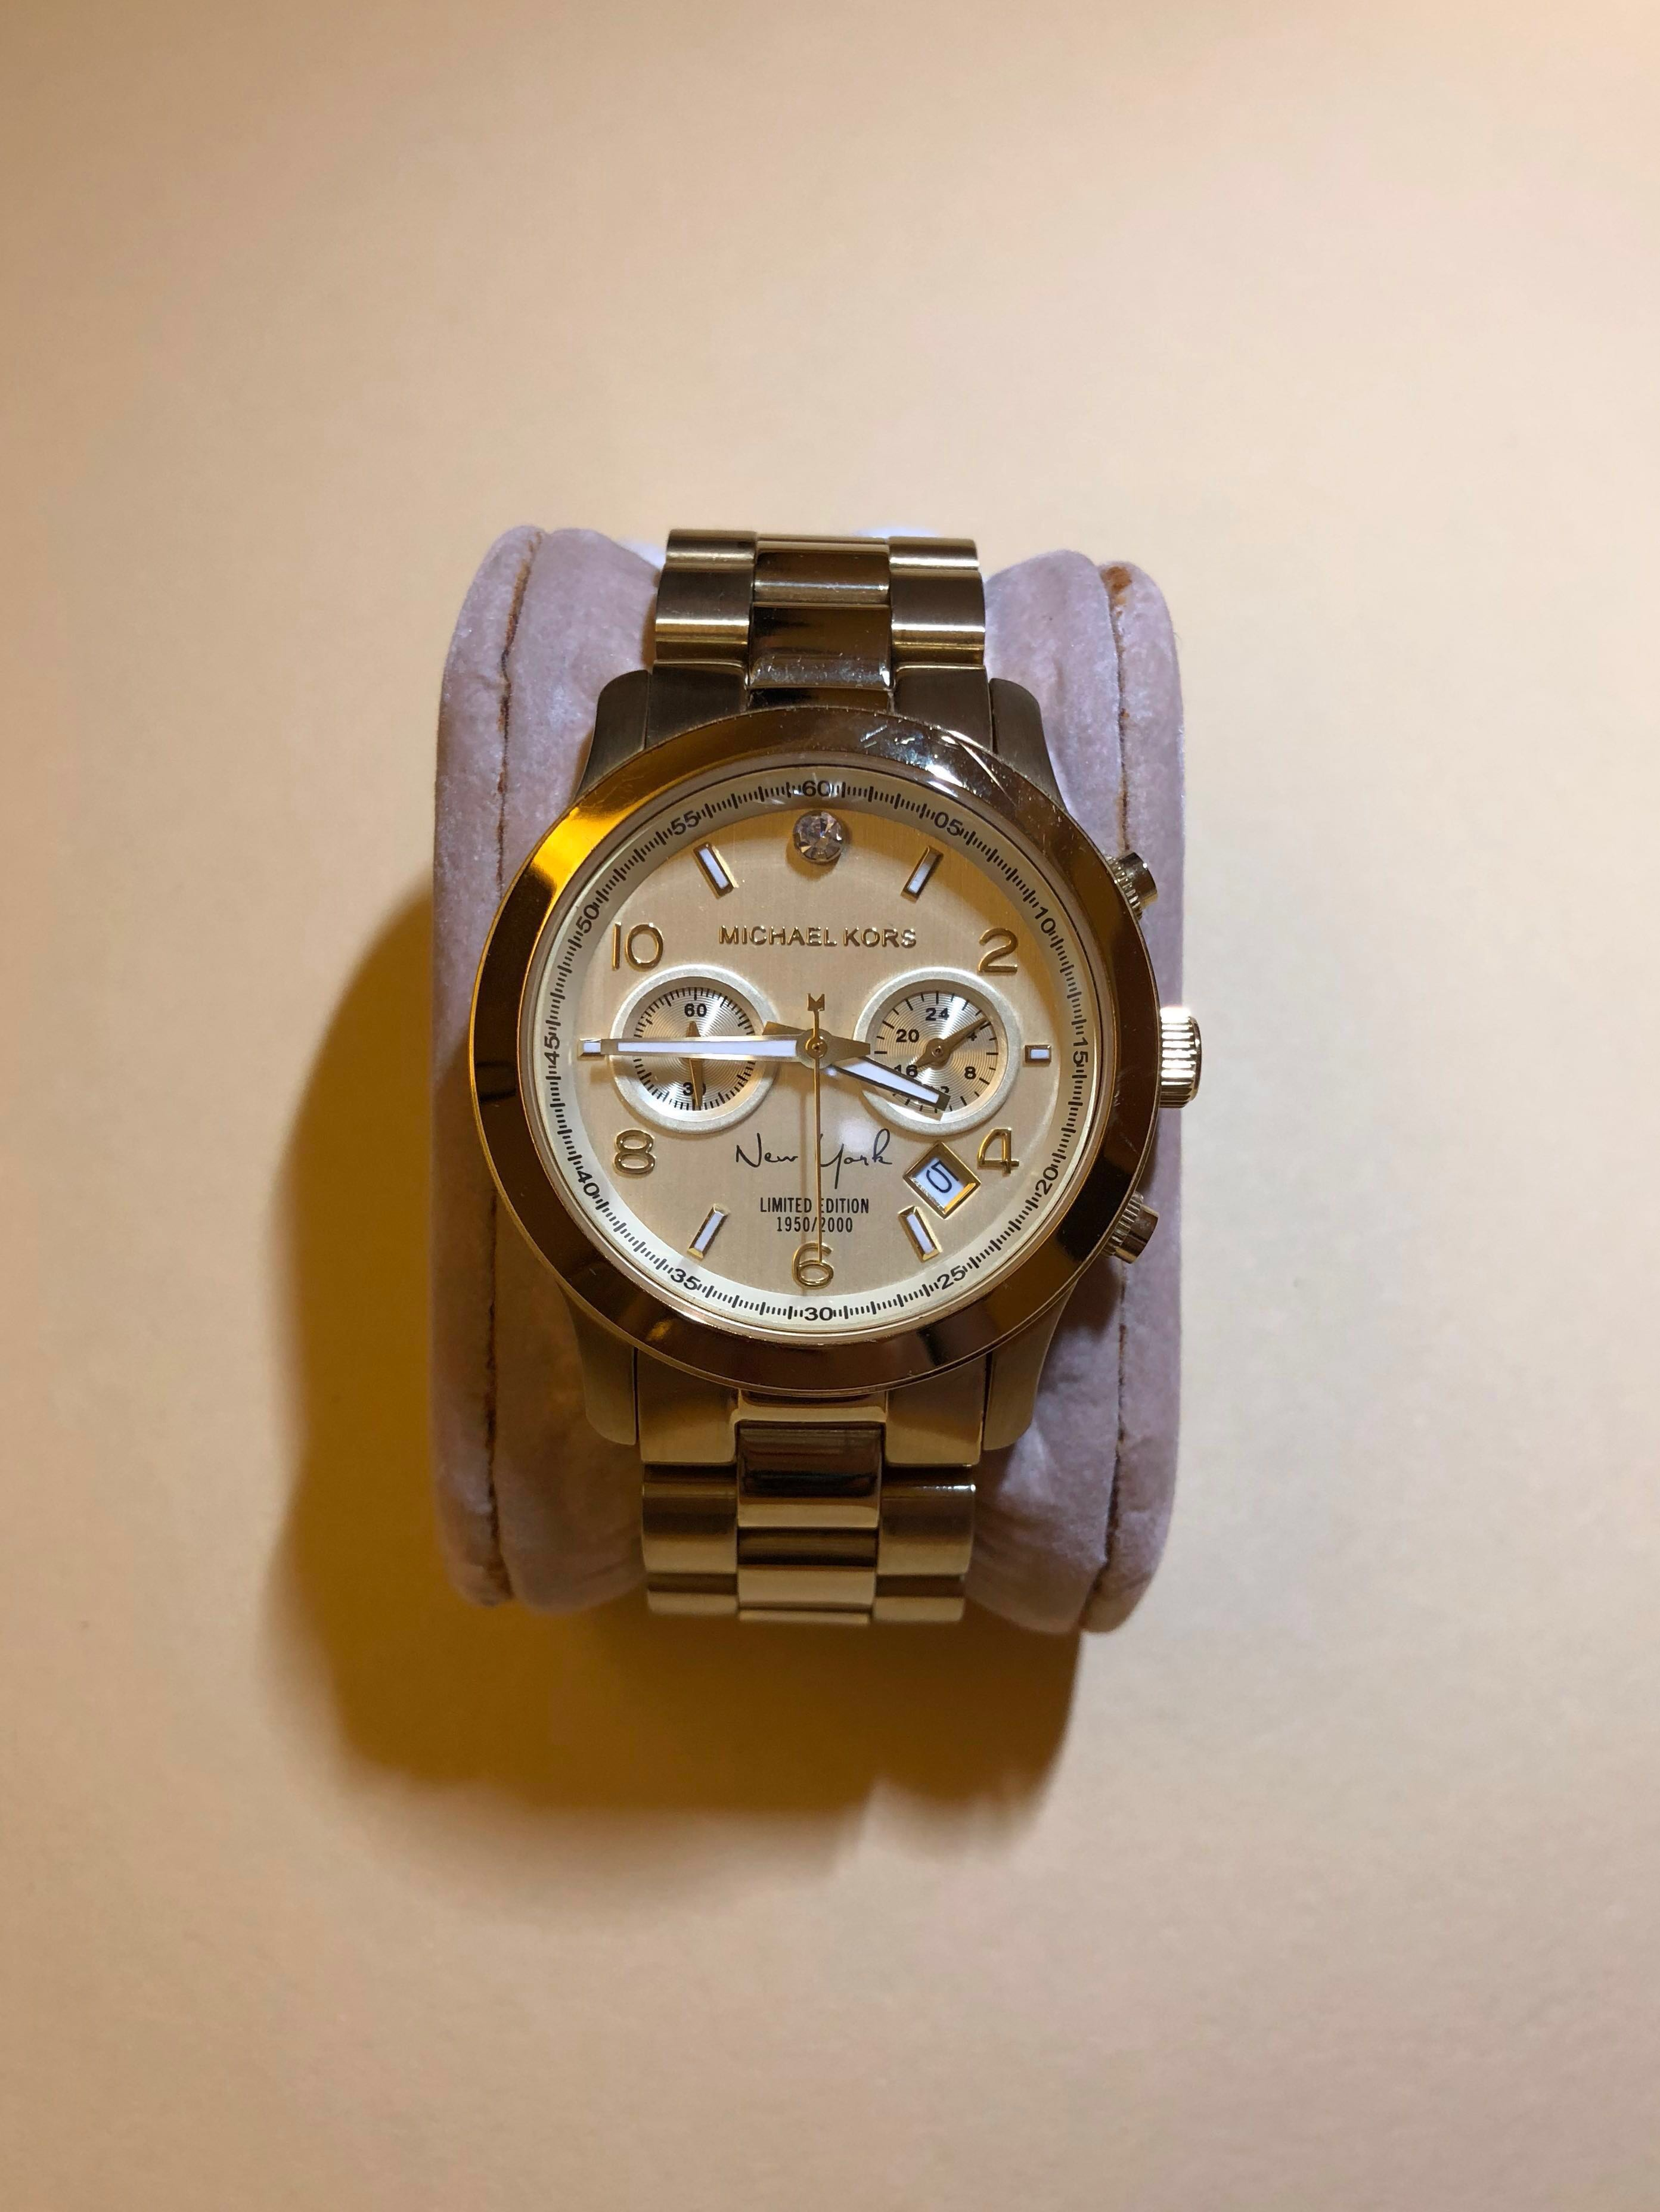 9c02a97e7c66 Gold Michael Kors Watch - Limited Ed. New York